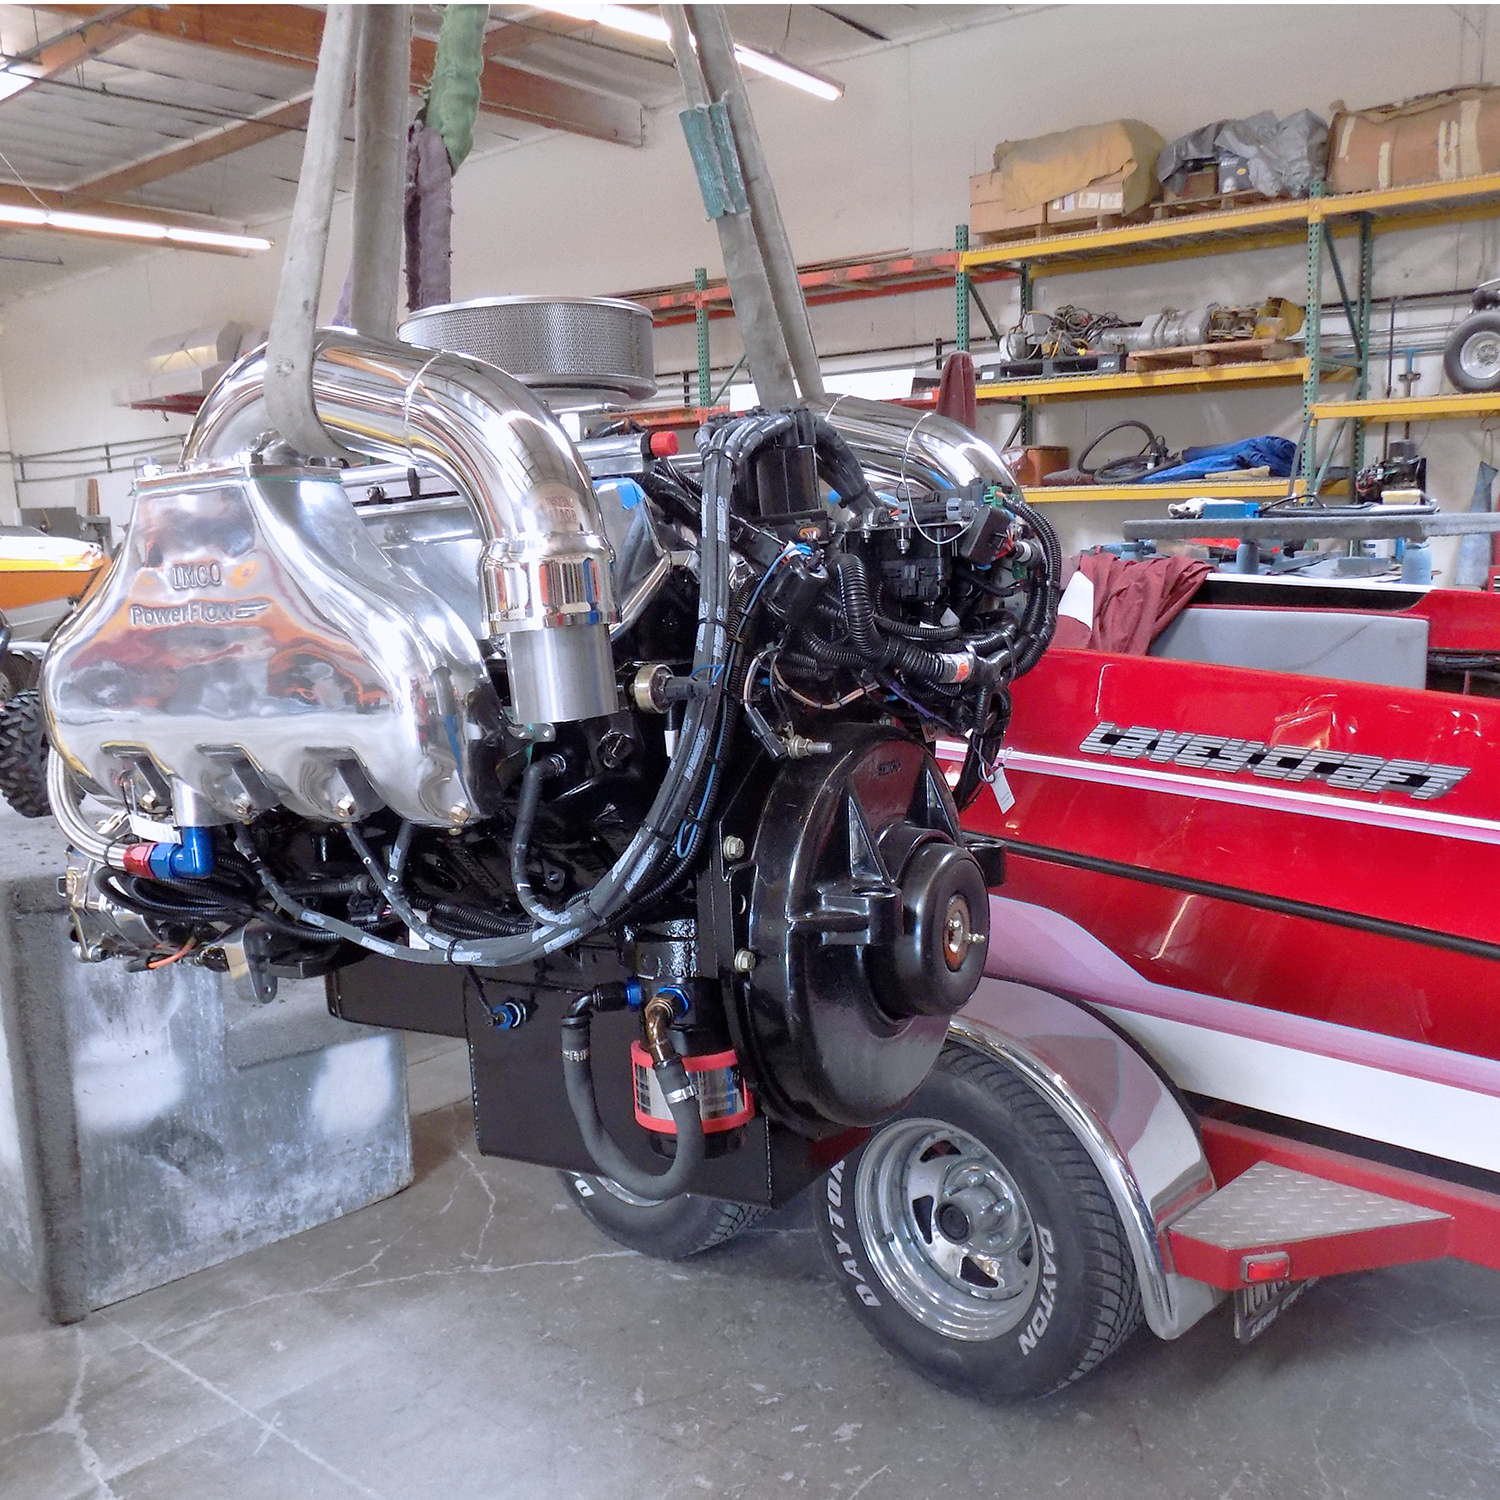 Lavey Craft Uncle Dave new Boostpower engine 20.8 Sebring - pic 4.jpg